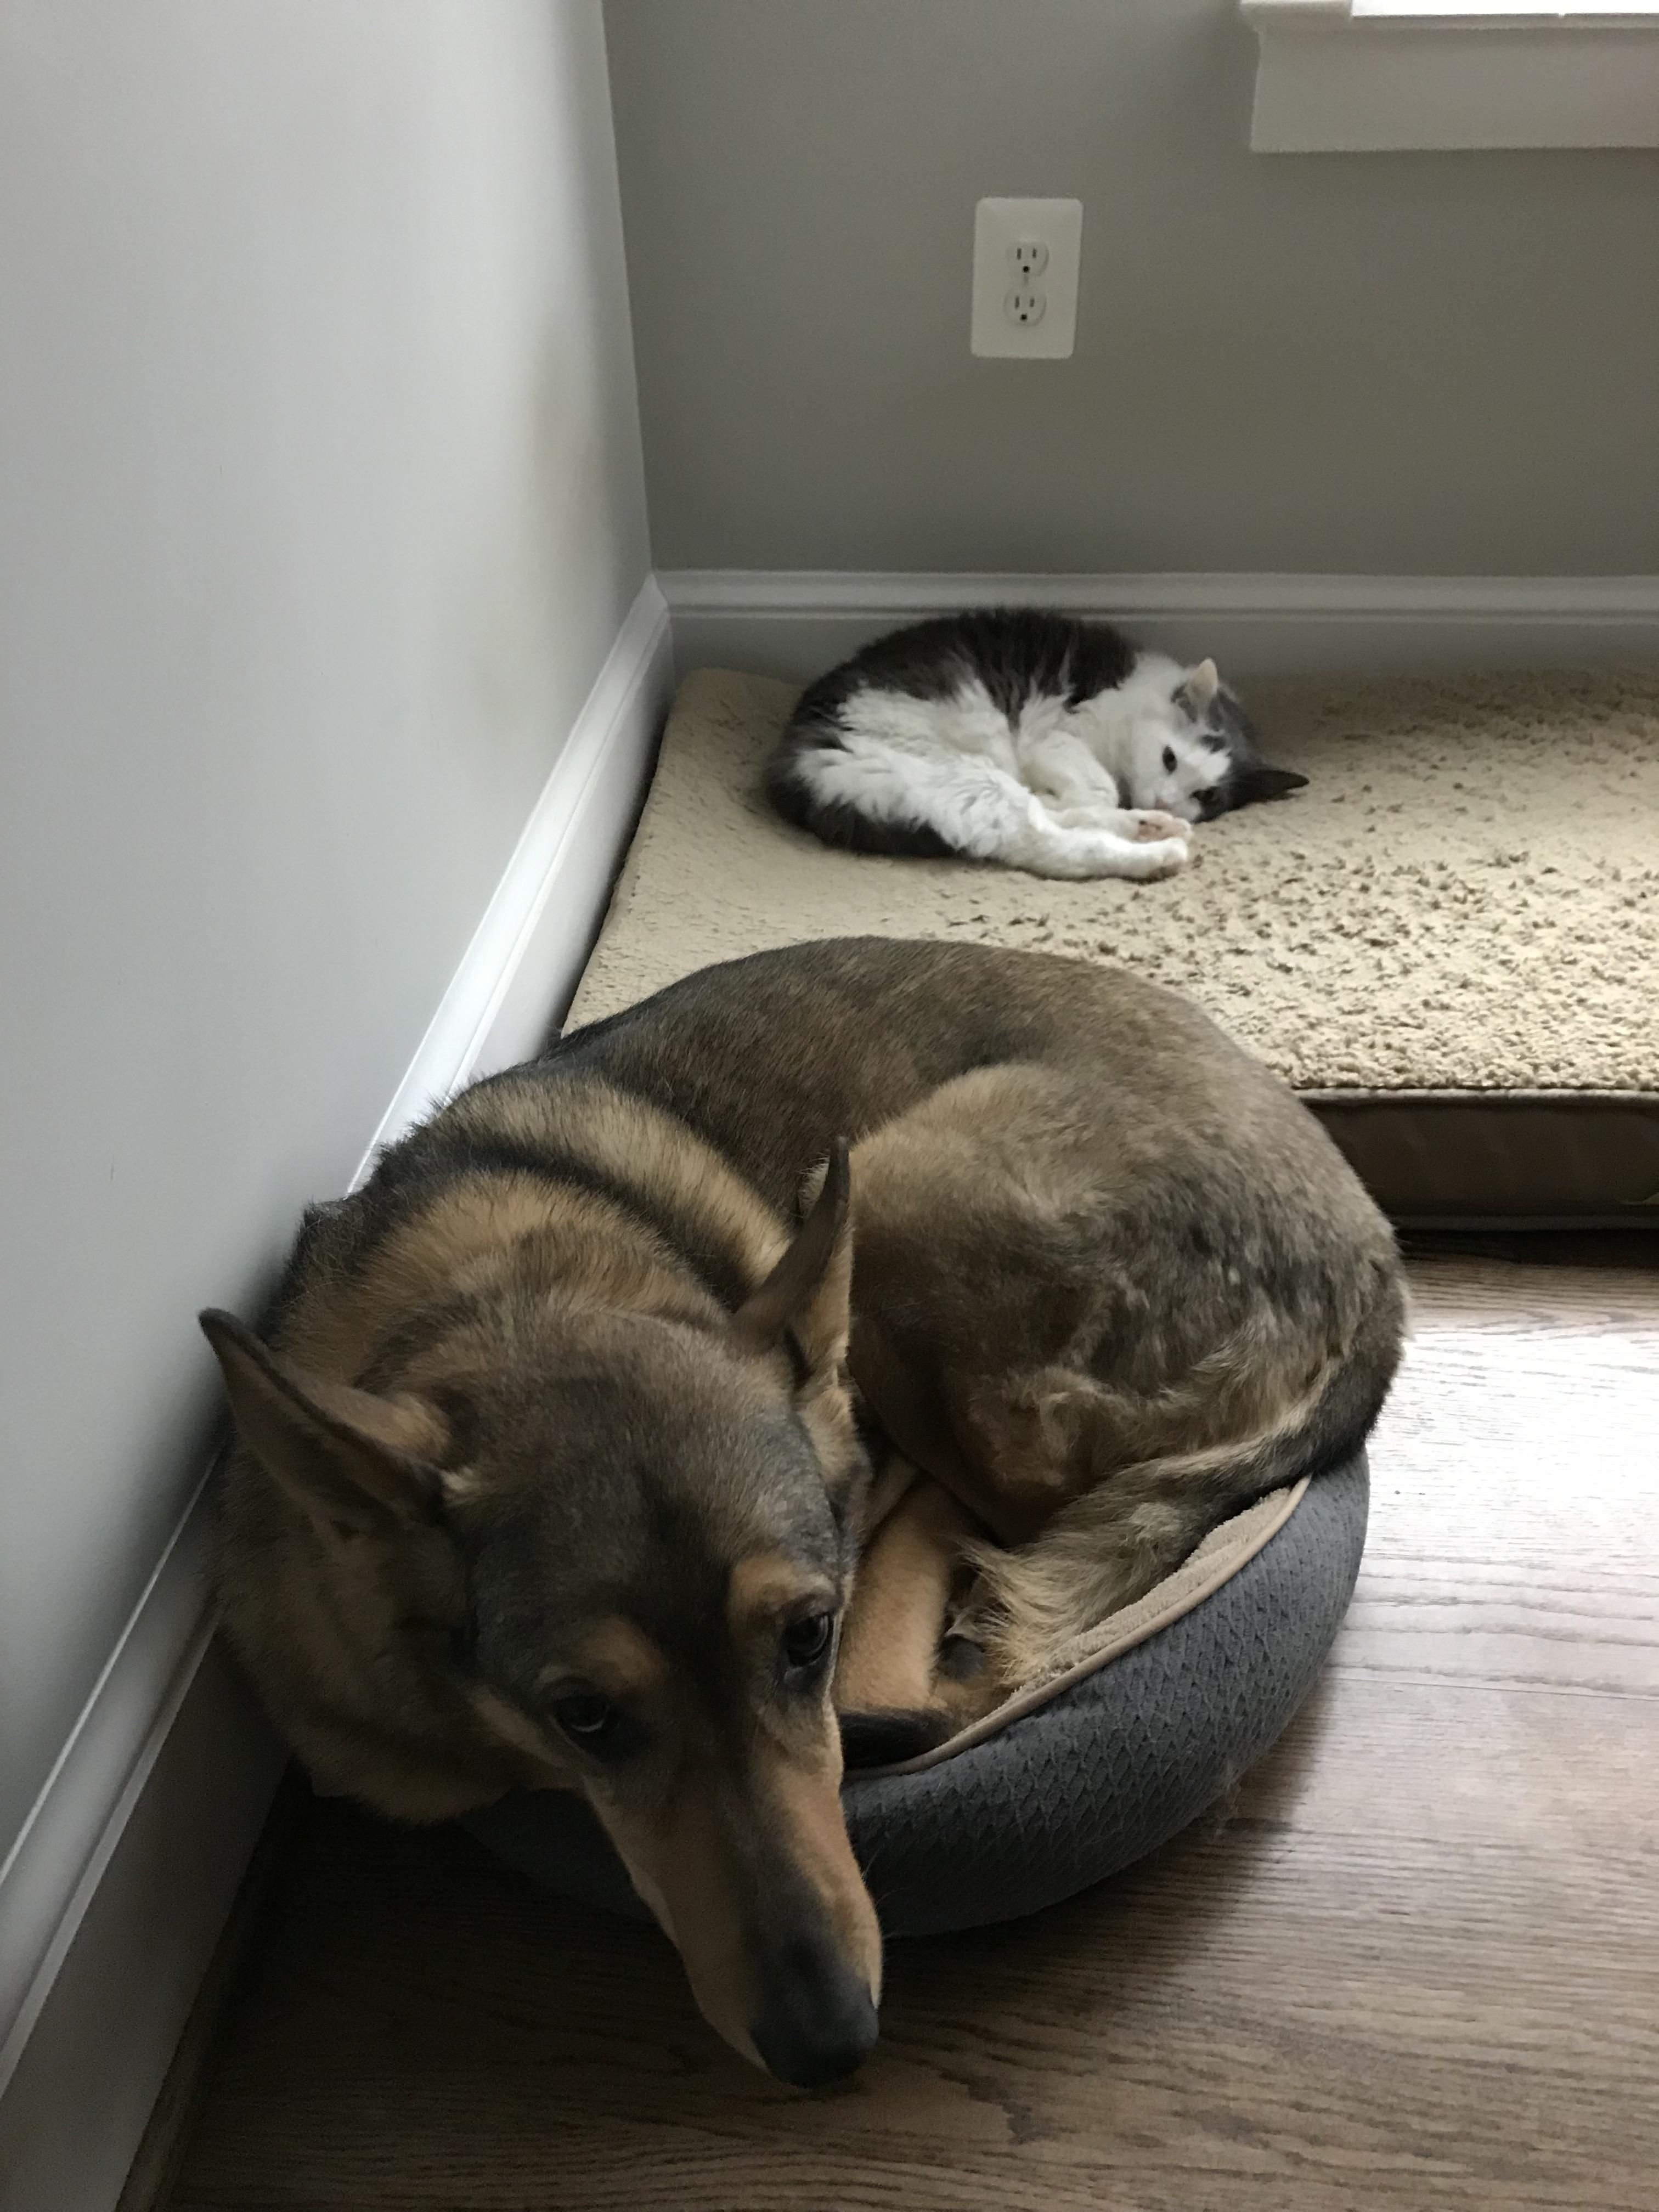 The cat is the alpha in this house.